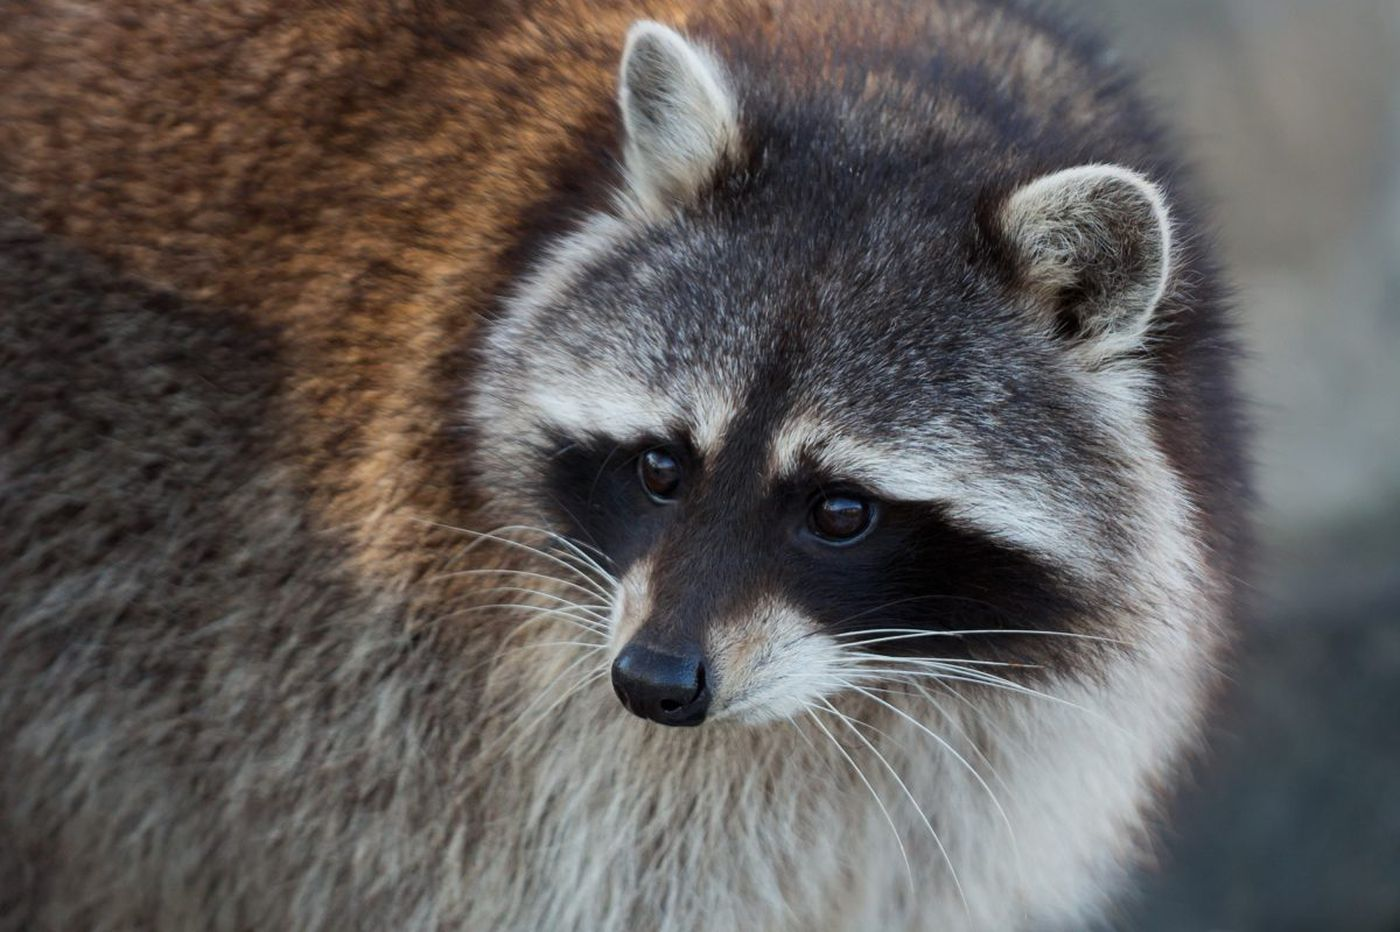 Raccoon reportedly attacks baby inside North Philadelphia home